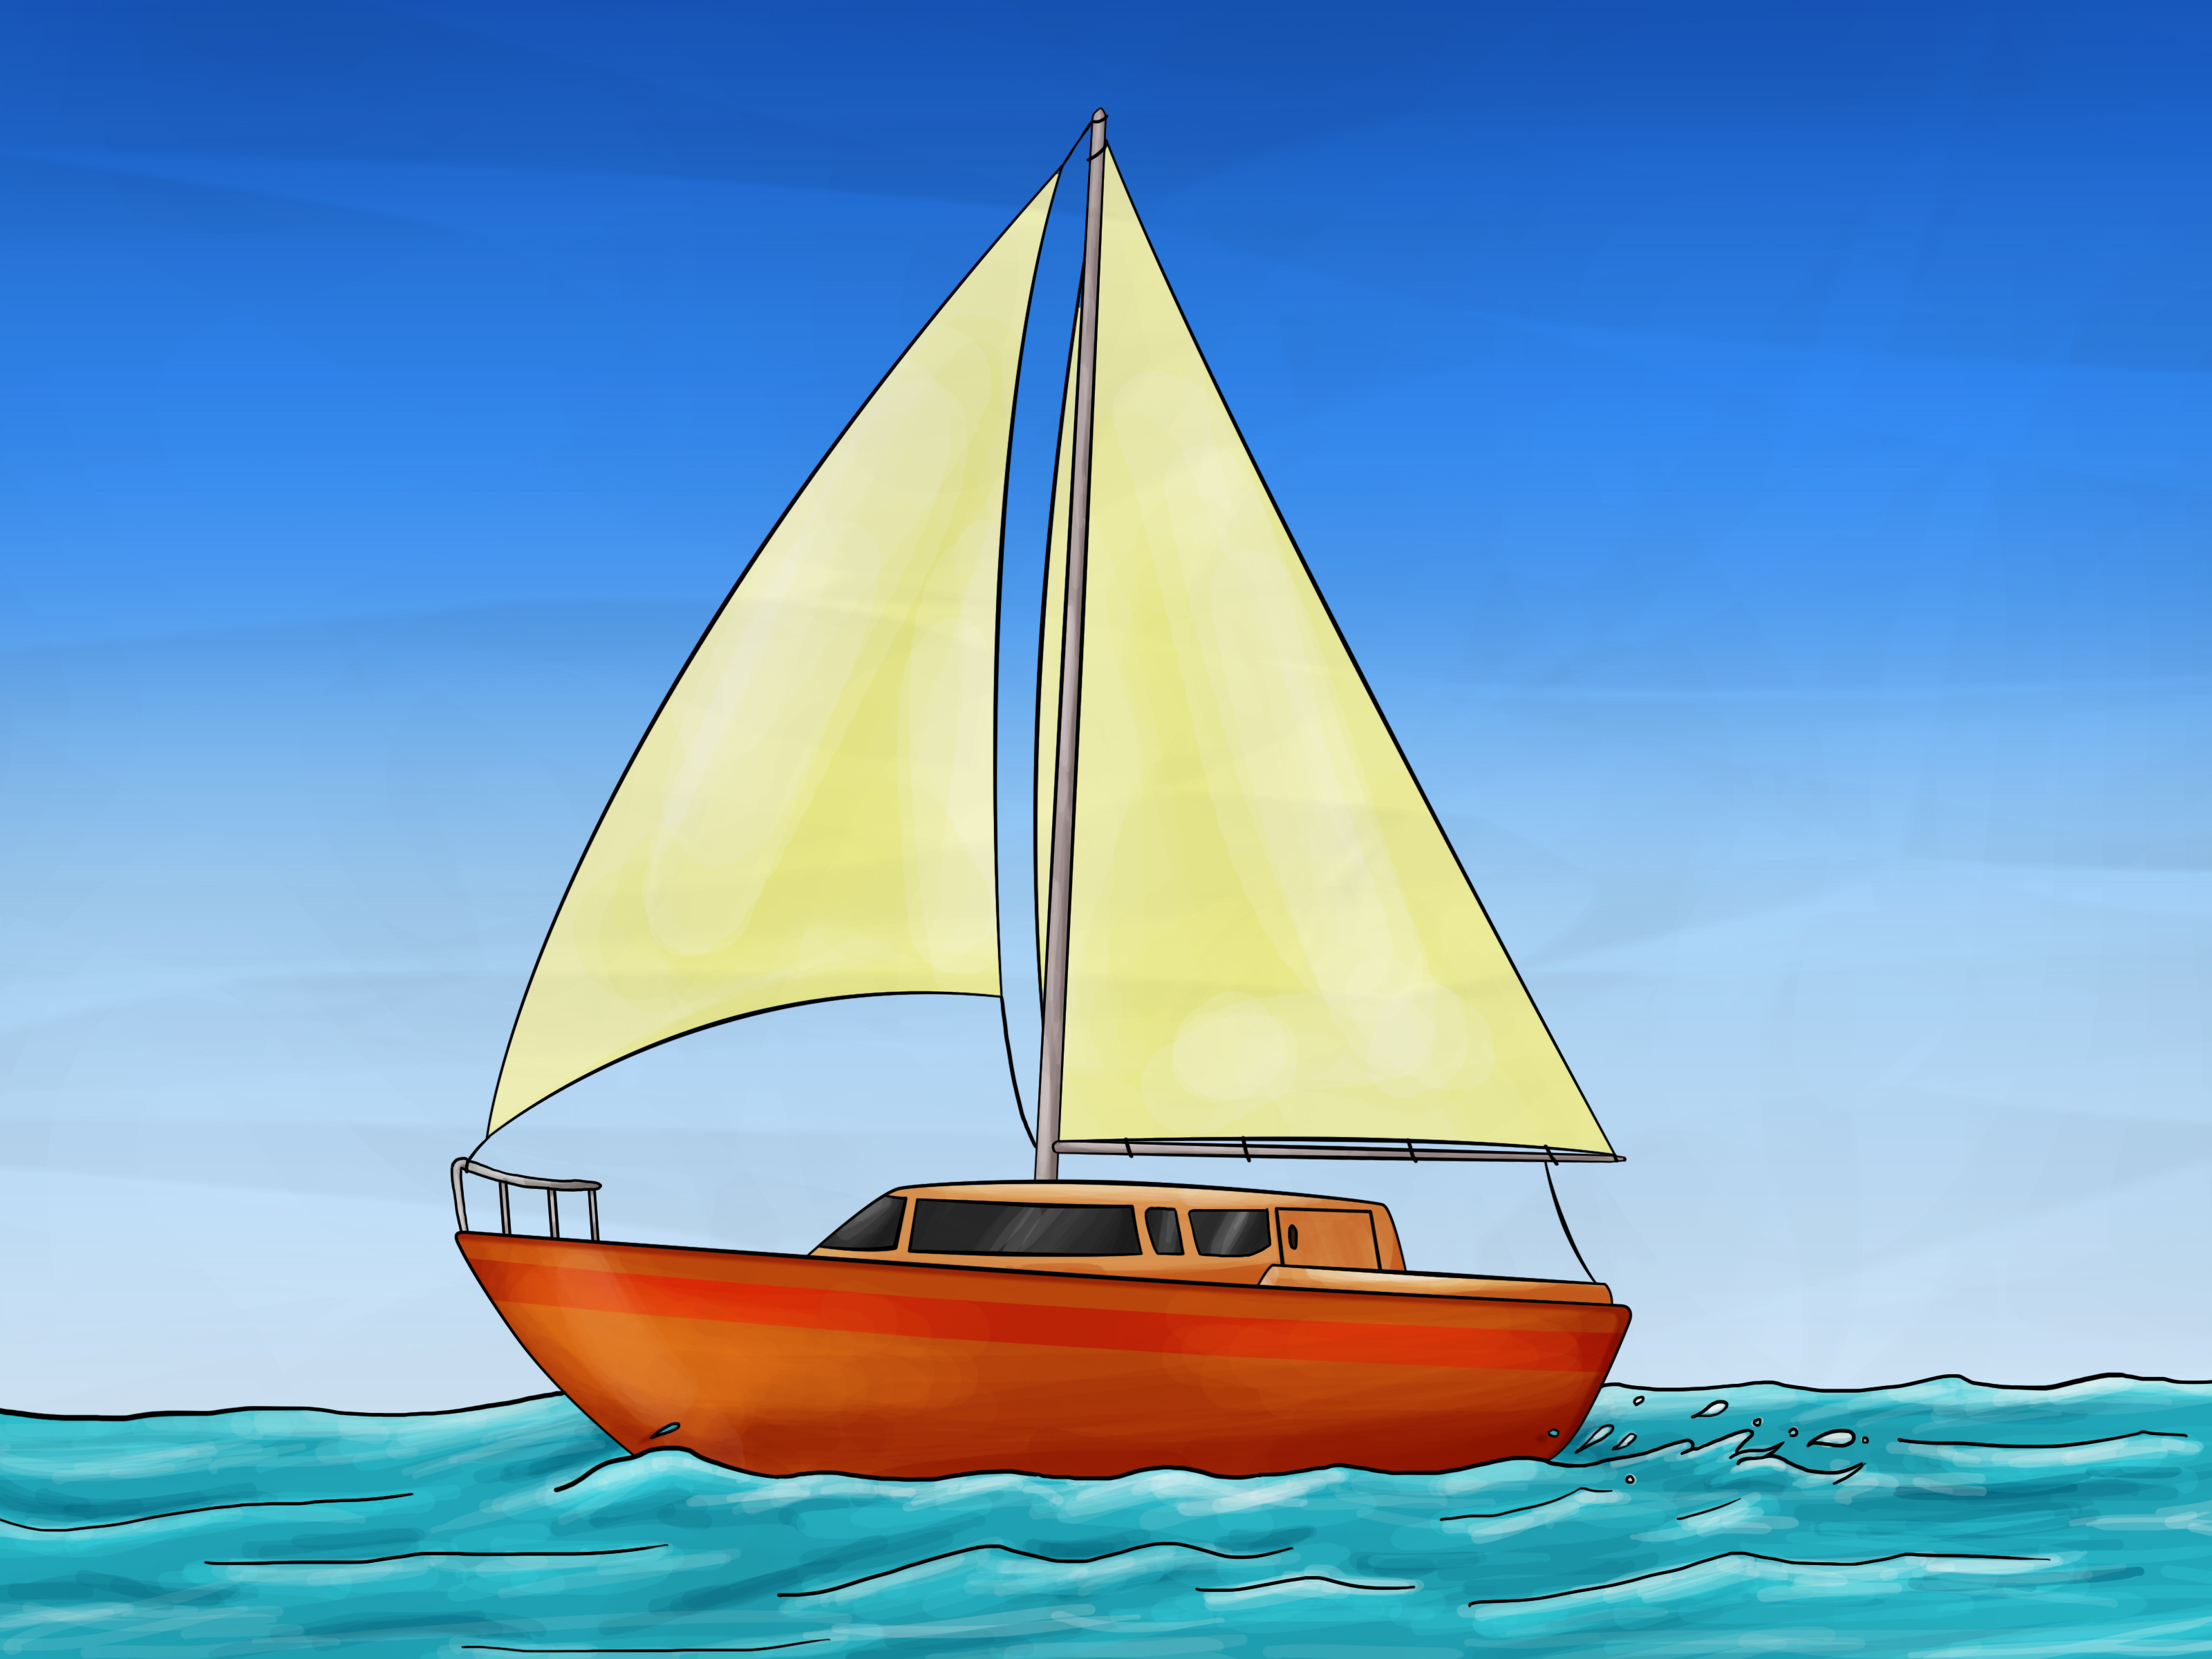 Drawn sailing How 7 (with to Pictures)